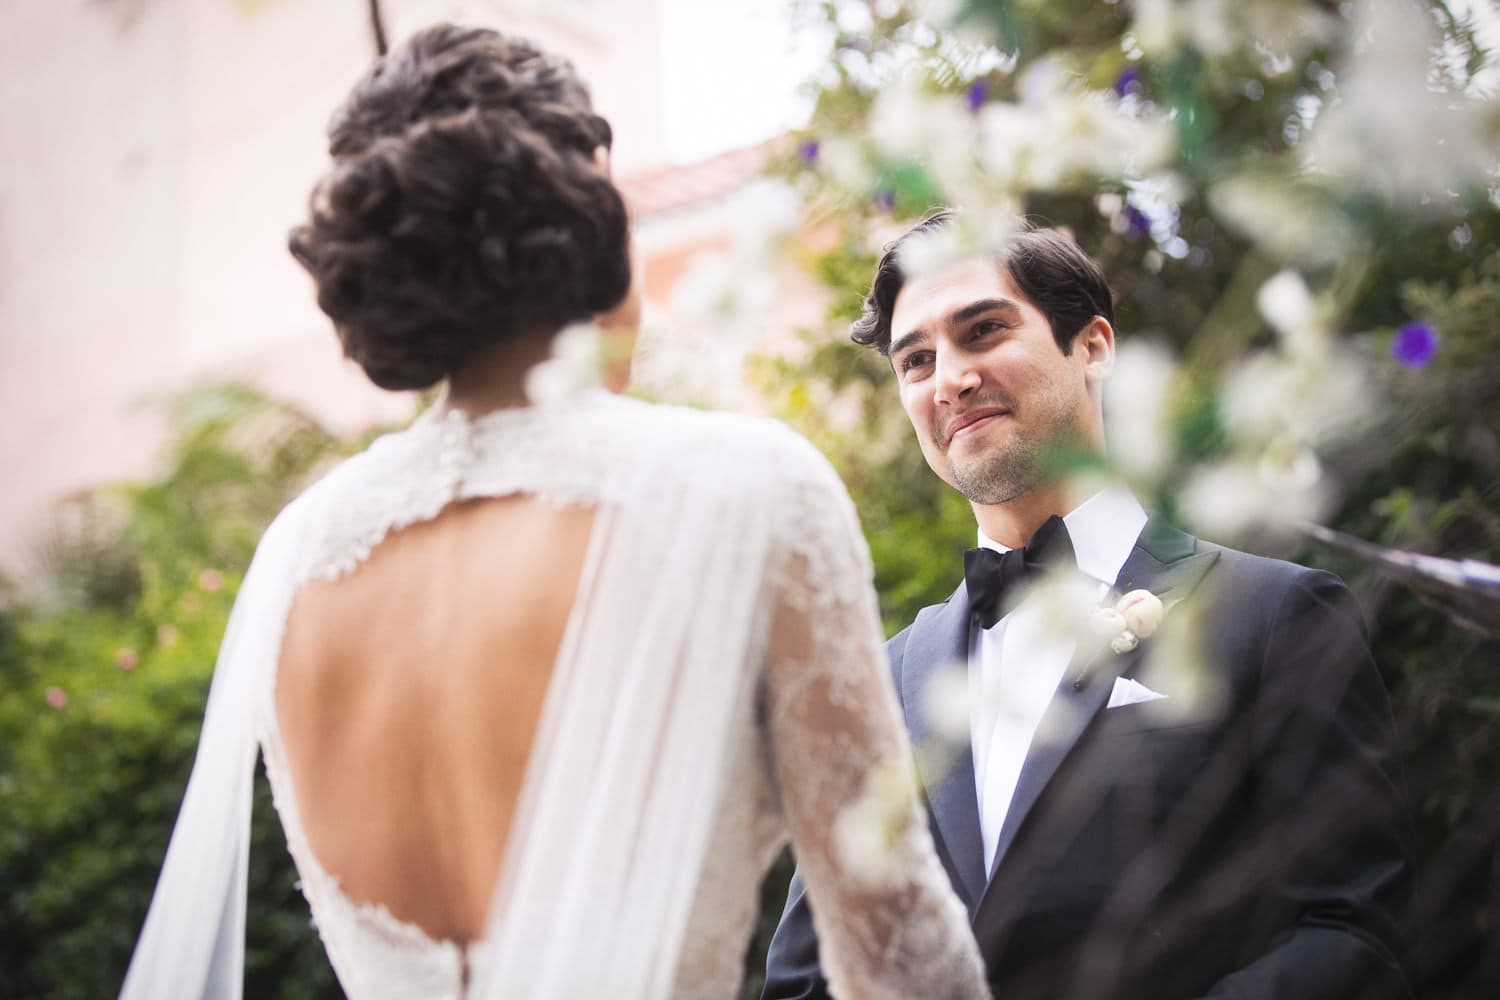 Fall wedding ceremony at the Hotel Bel-Air